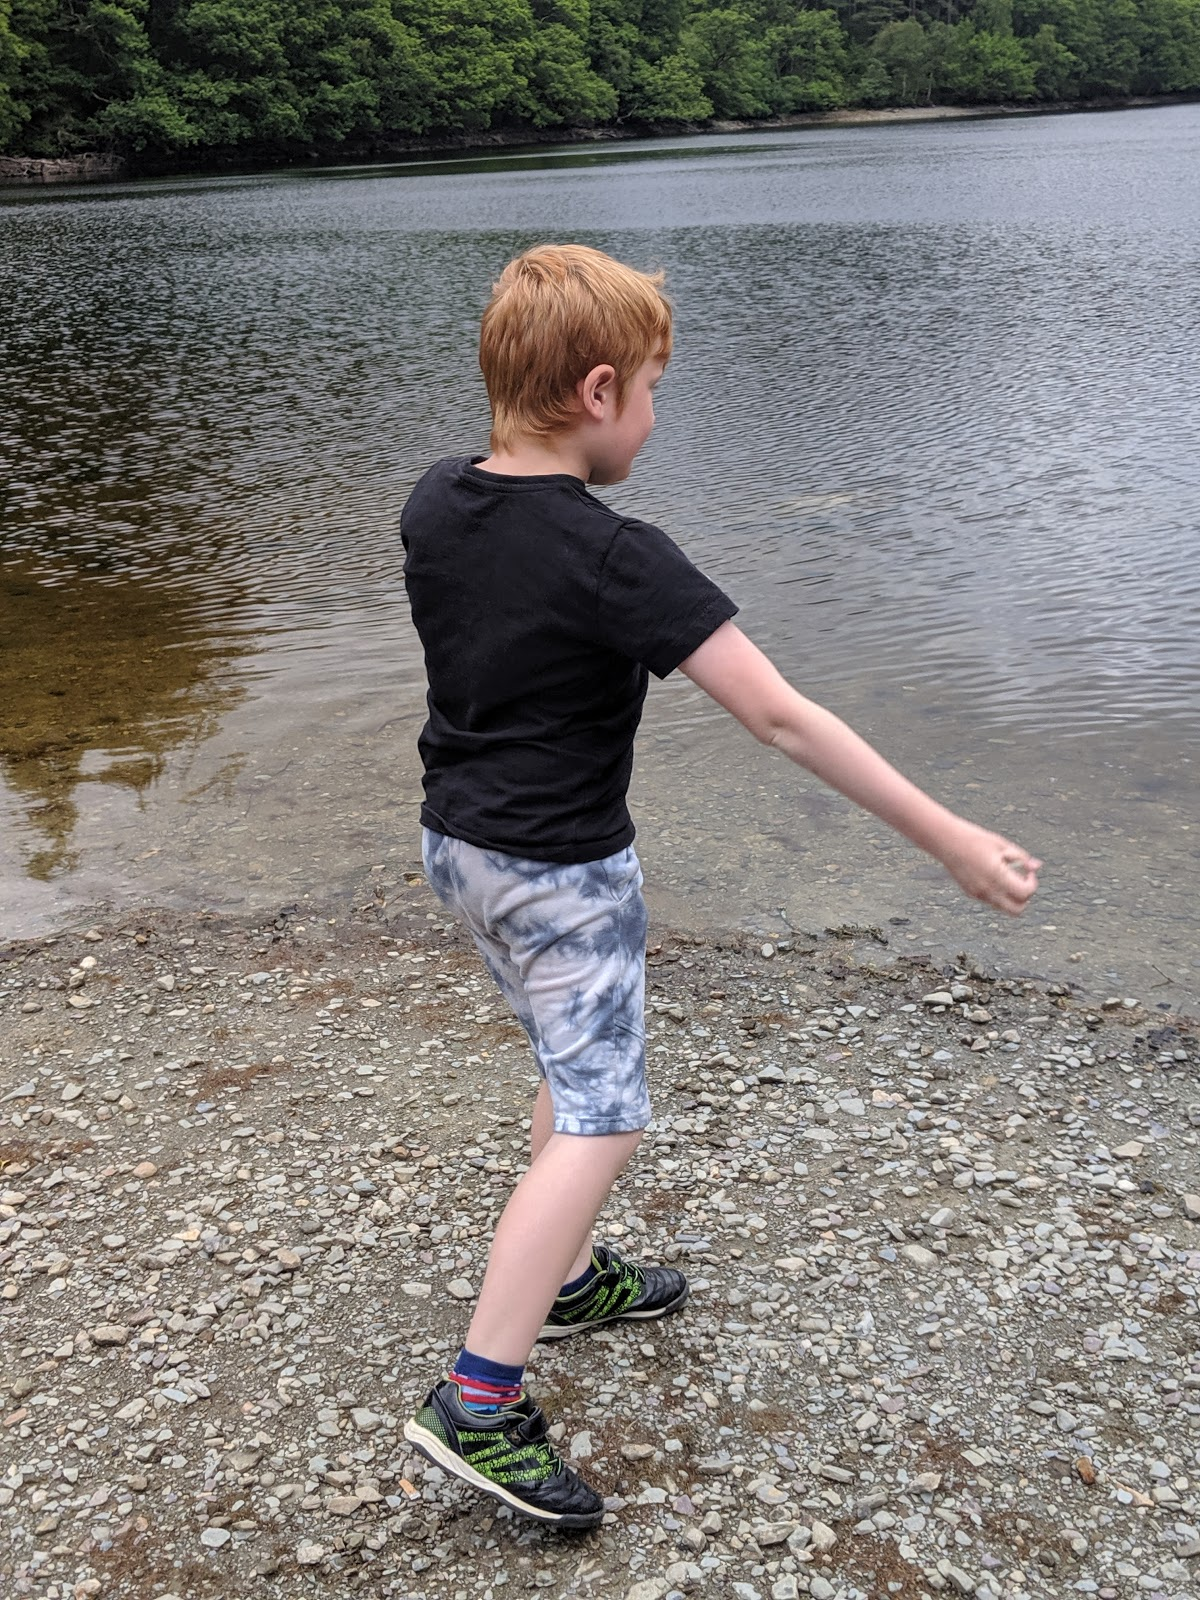 A Short Break at Cameron Lodges, Loch Lomond - Three Lochs Forest Drive stone skimming